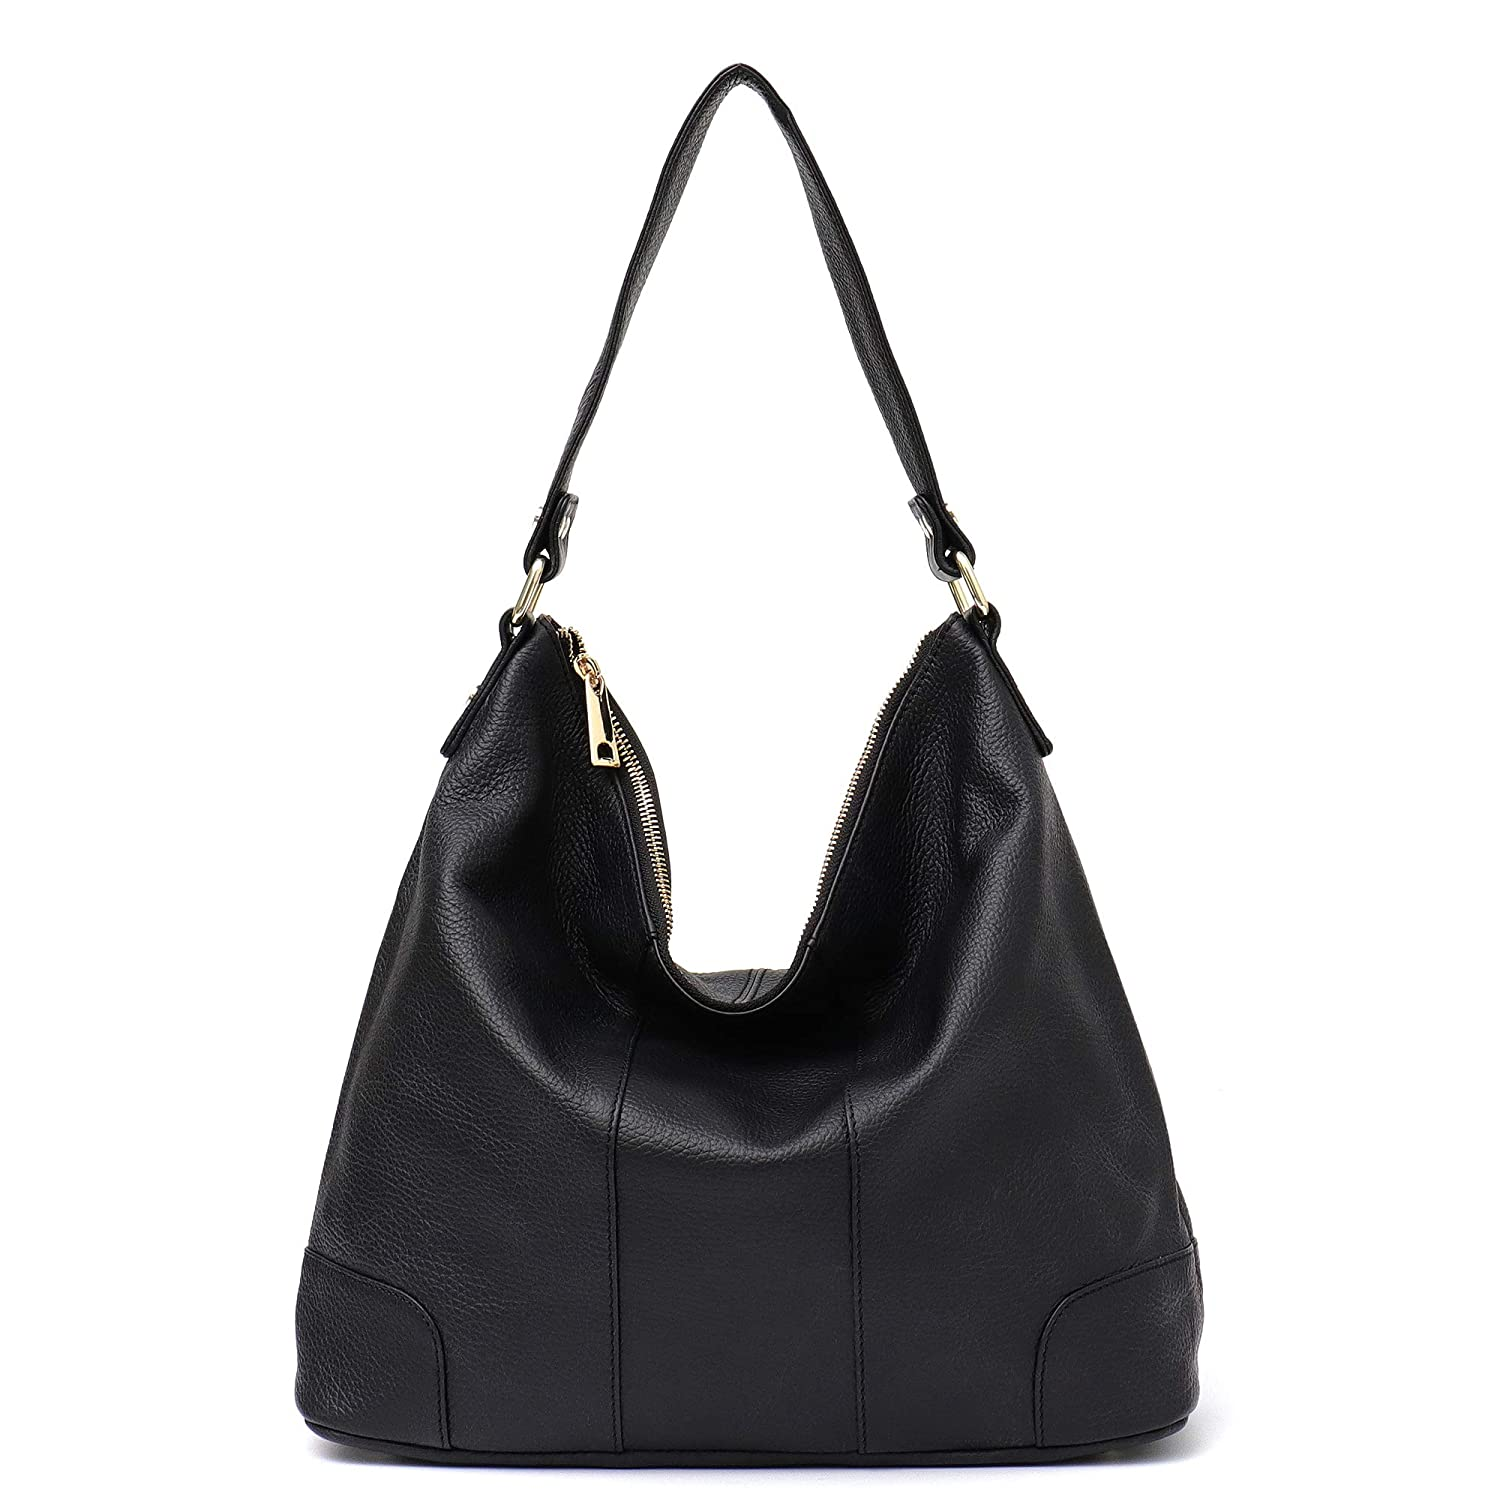 ... Women STEPHIECATH Fashion Cow Leather Hobo Shoulder Bags Large Genuine  Leather Tote Slouchy Brand Female Luxury Leather Daily Life Work Pattern  Handbag ... 599947afc7fee